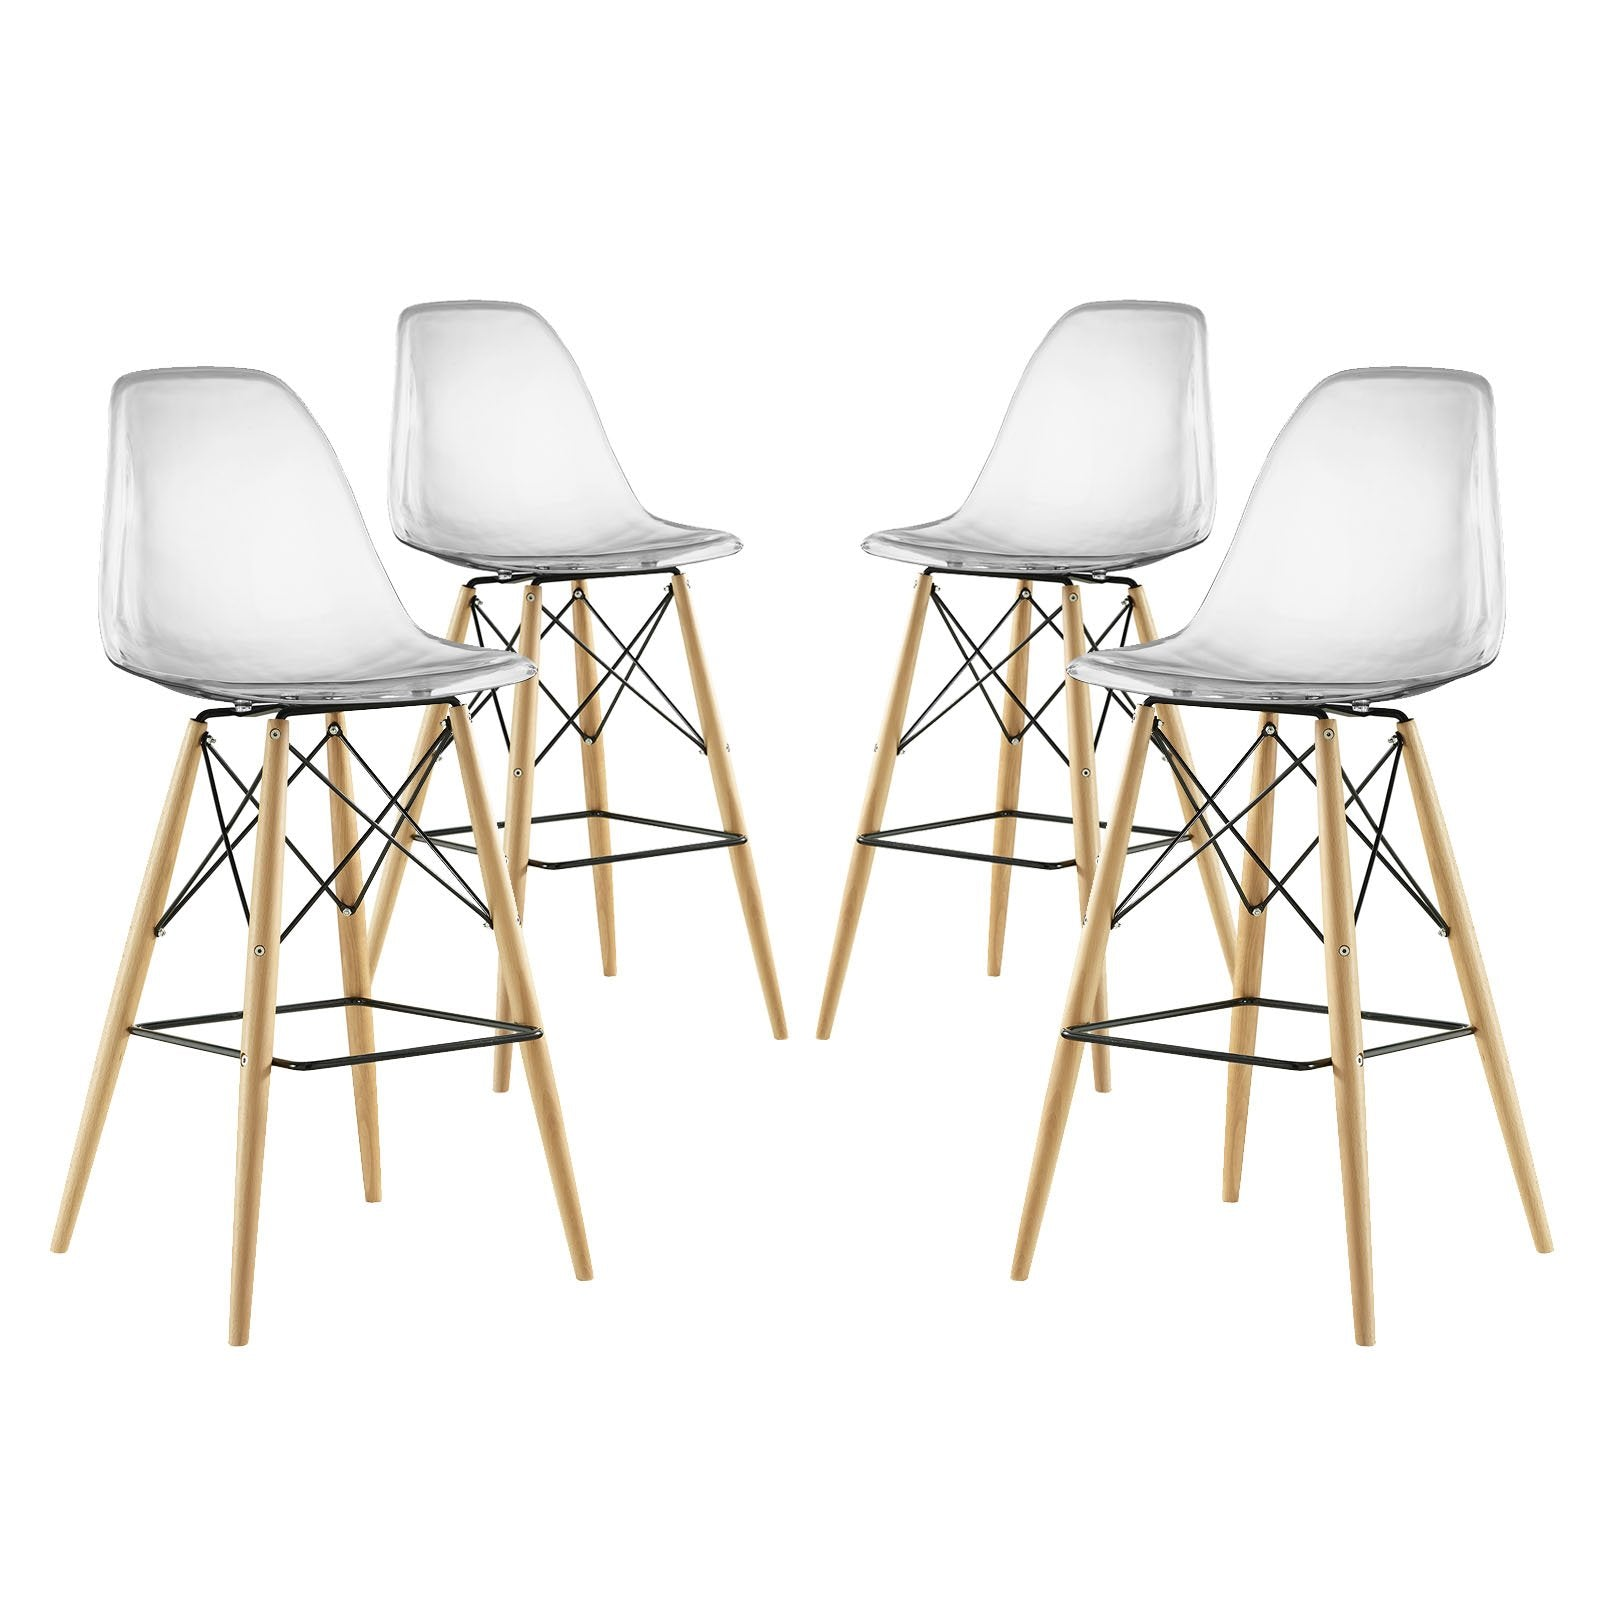 East End Imports Pyramid Dining Side Bar Stool Set of 4 in Clear